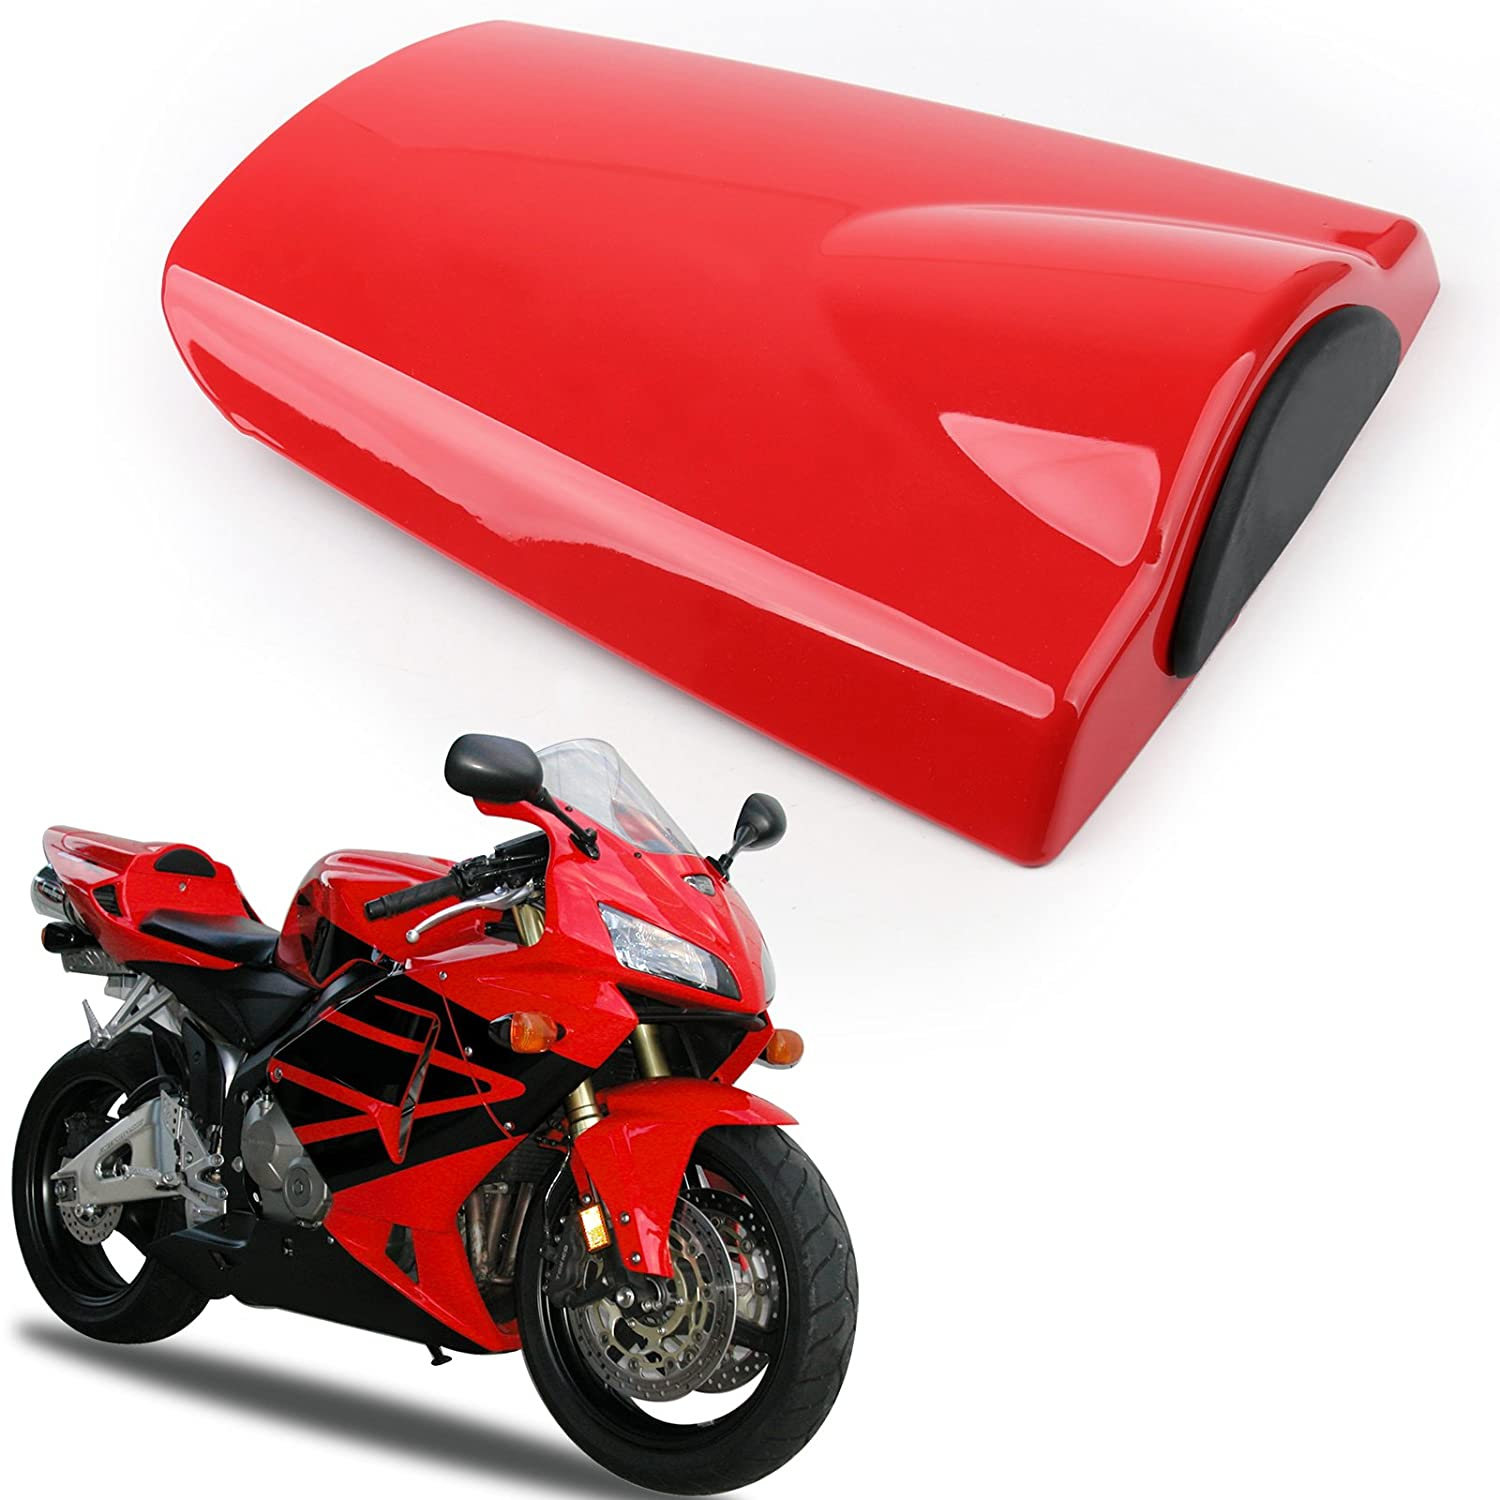 Areyourshop Rear Seat Fairing Cover cowl For Honda CBR 600 CBR600 2003-2006 2004 2005